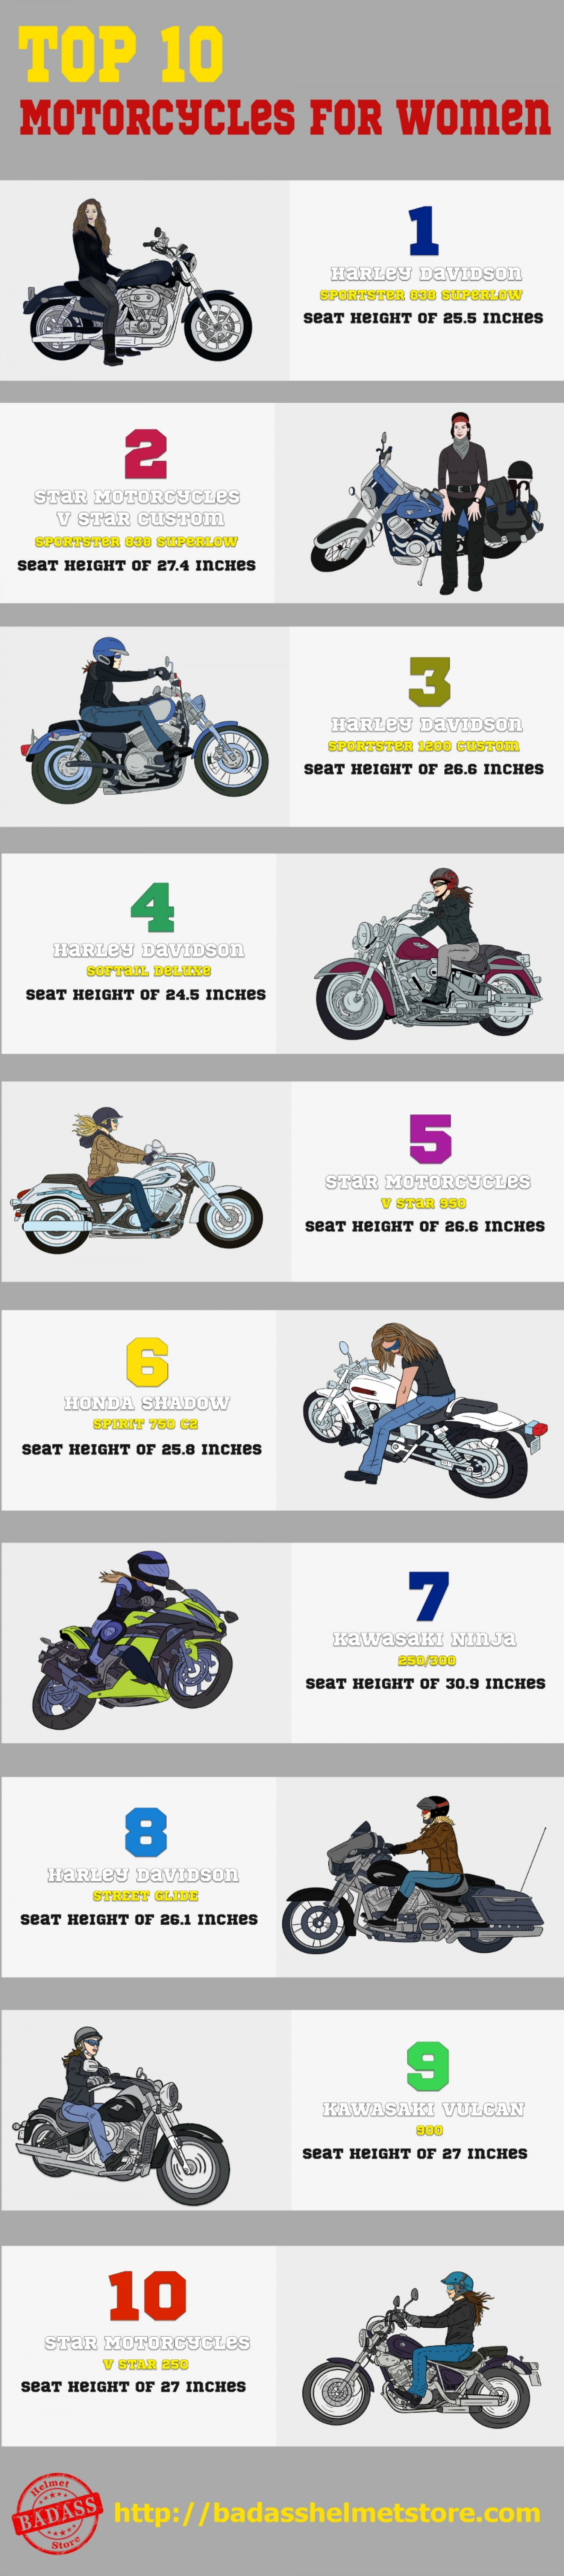 5 Types of Women the Ride Motorcycles Infographic